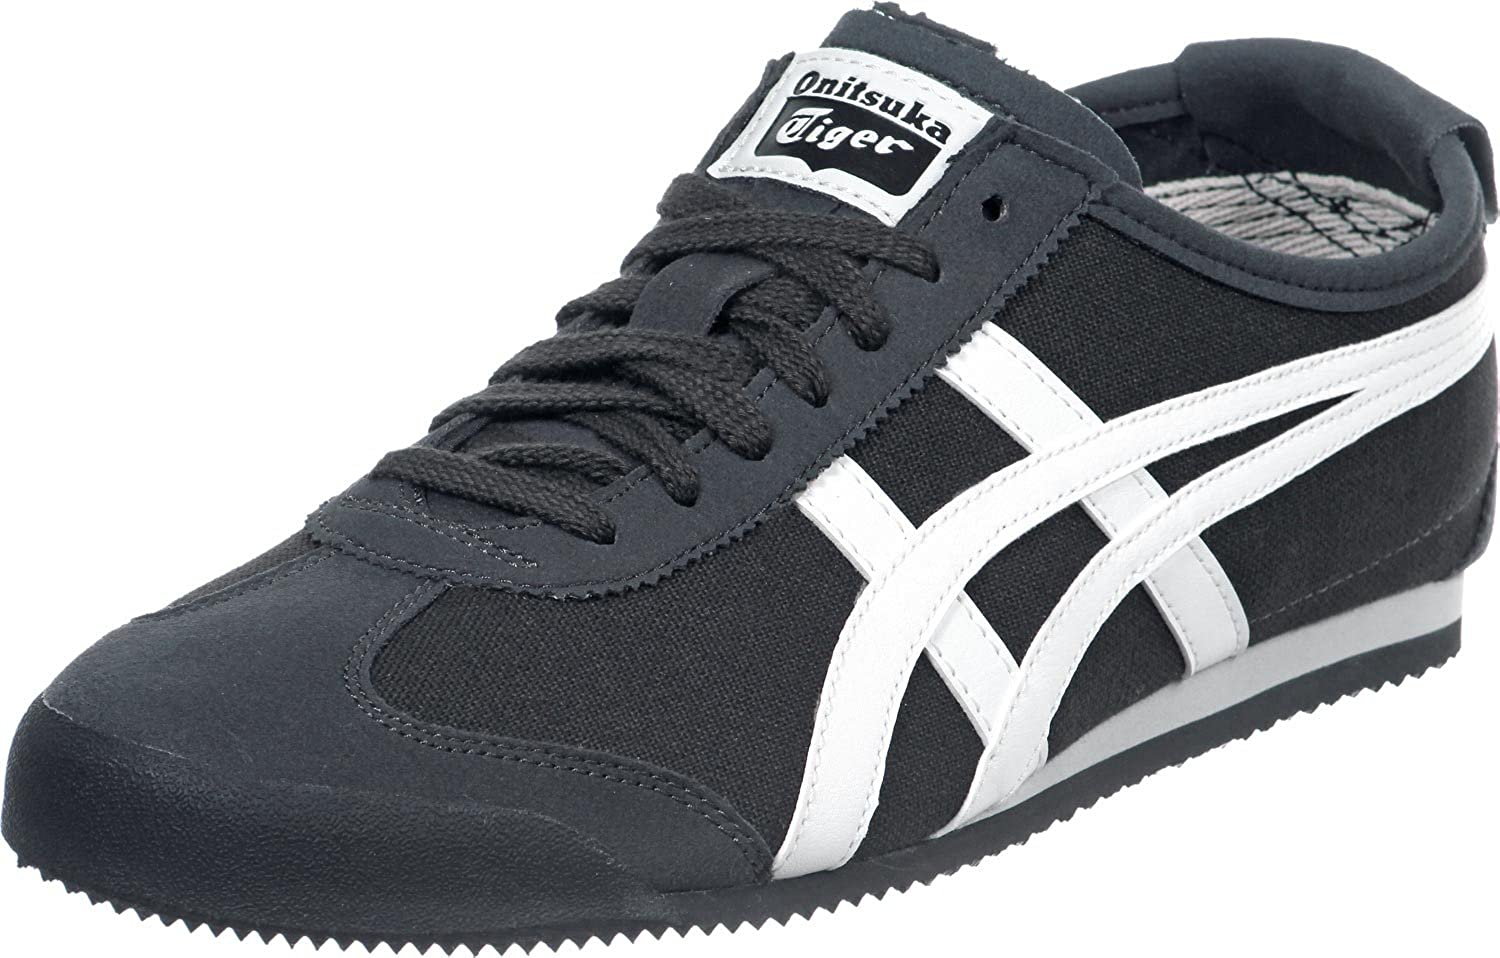 onitsuka tiger mexico 66 black and white zinfandel